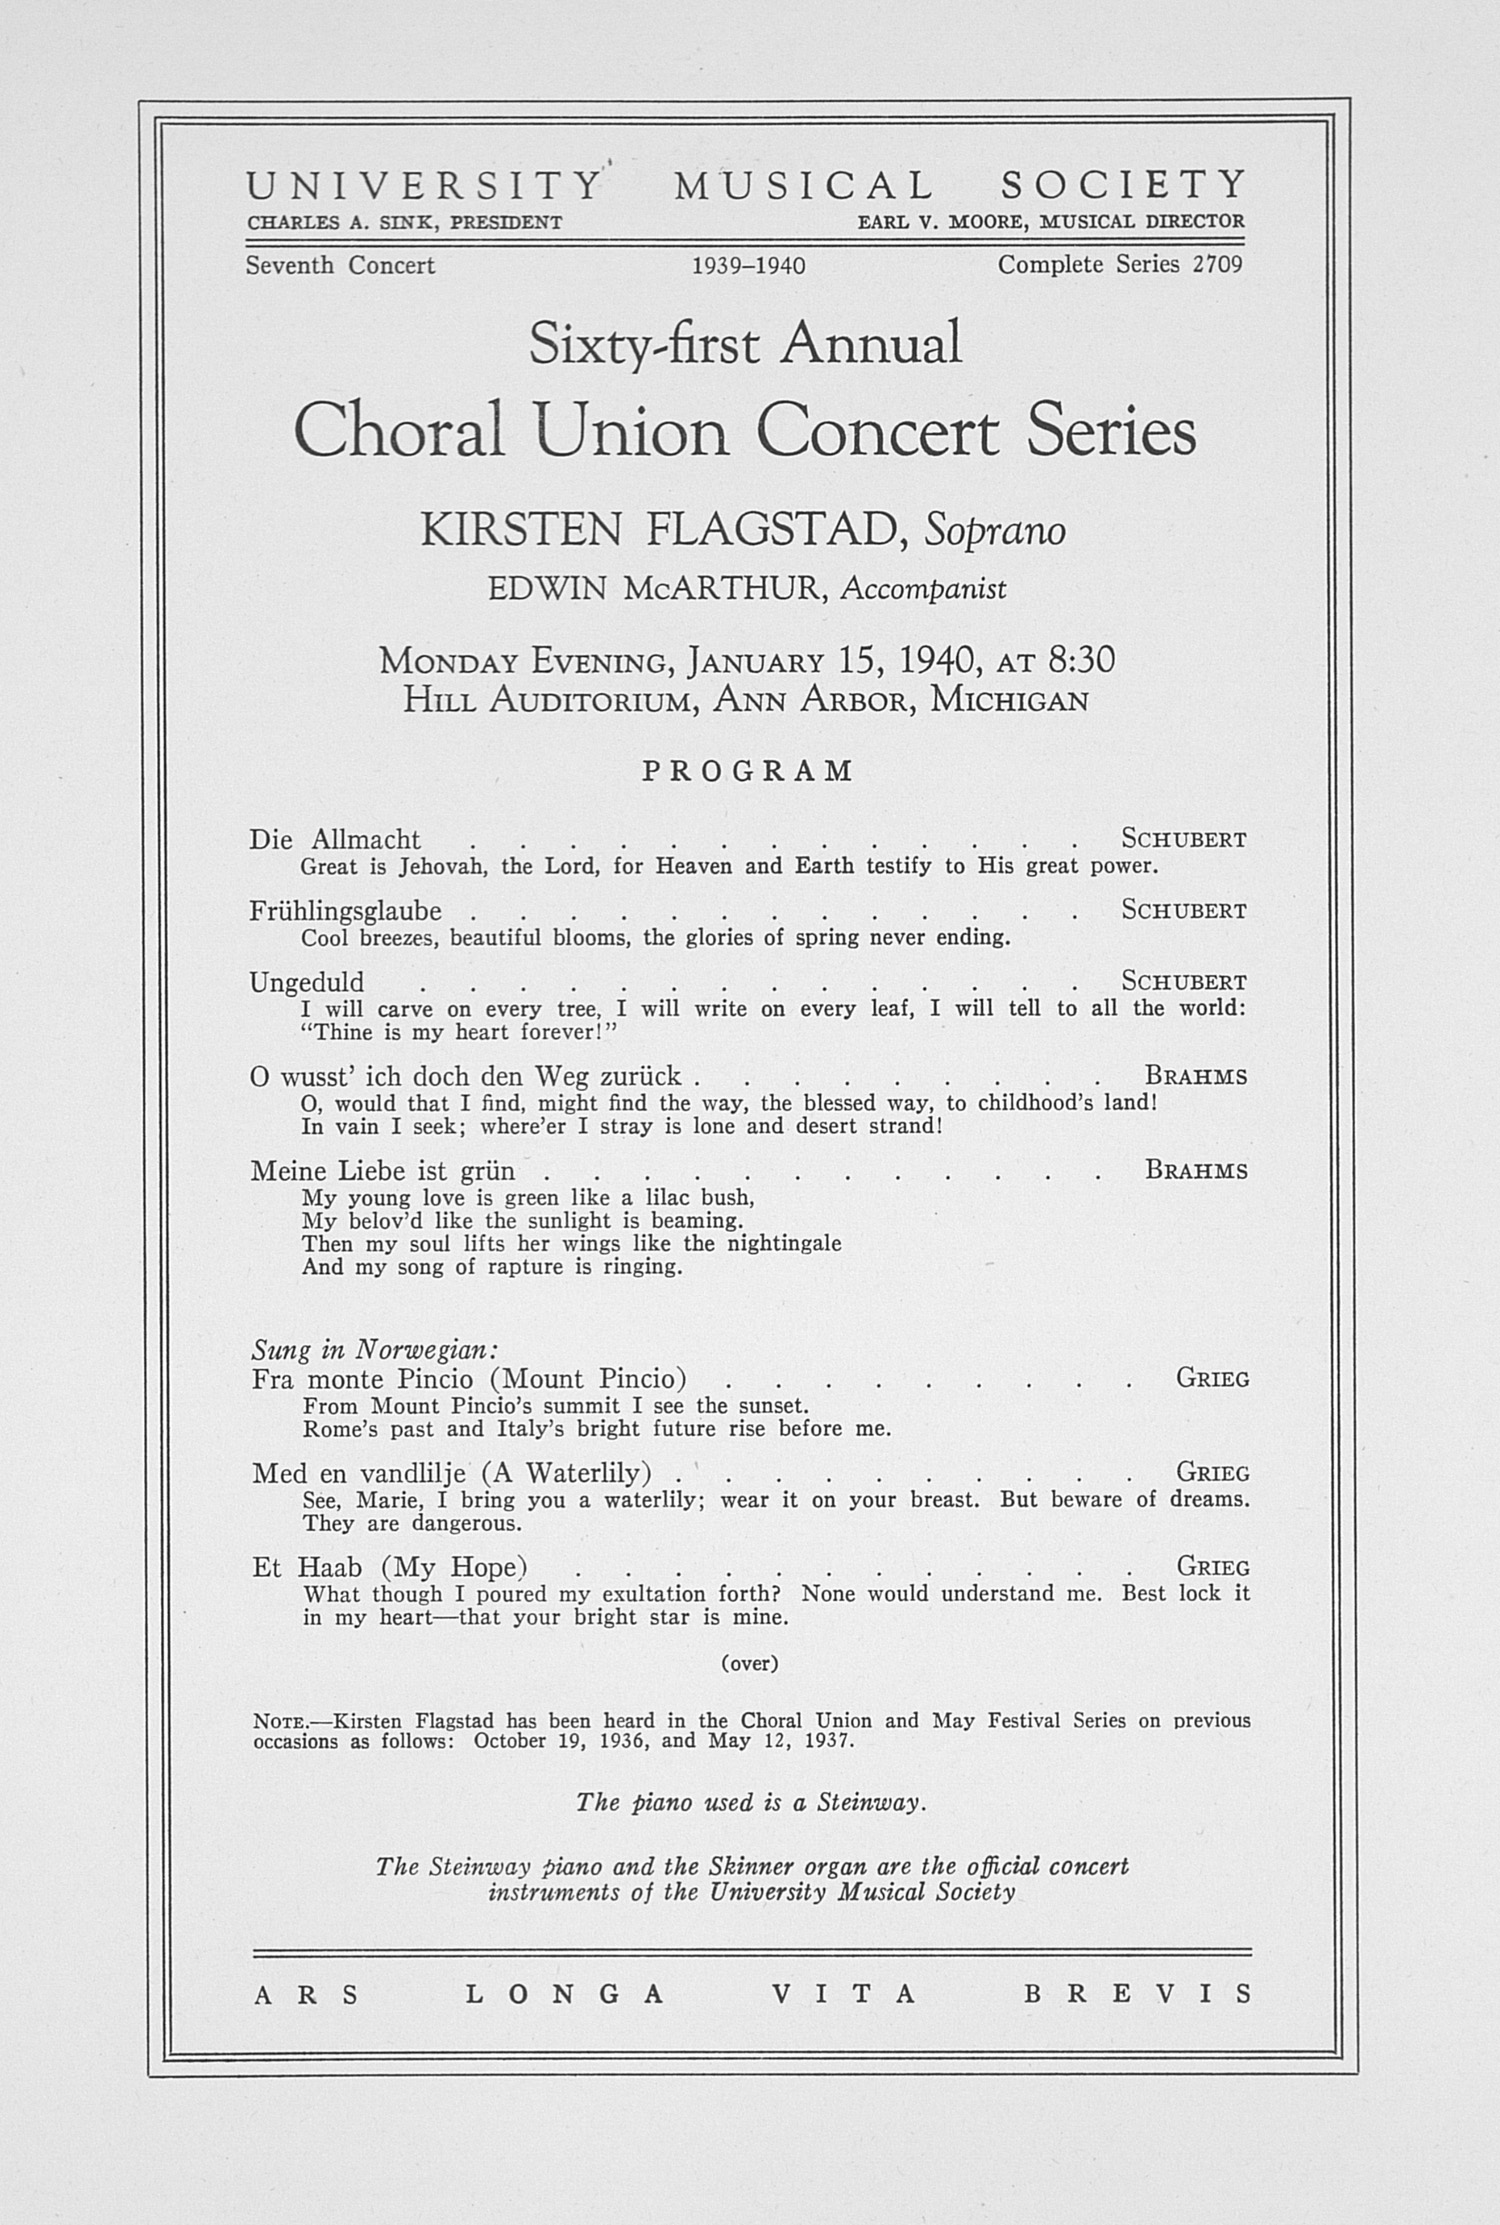 UMS Concert Program, January 15, 1940: Sixty-first Annual Choral Union Concert Series -- Kirsten Flagstad image